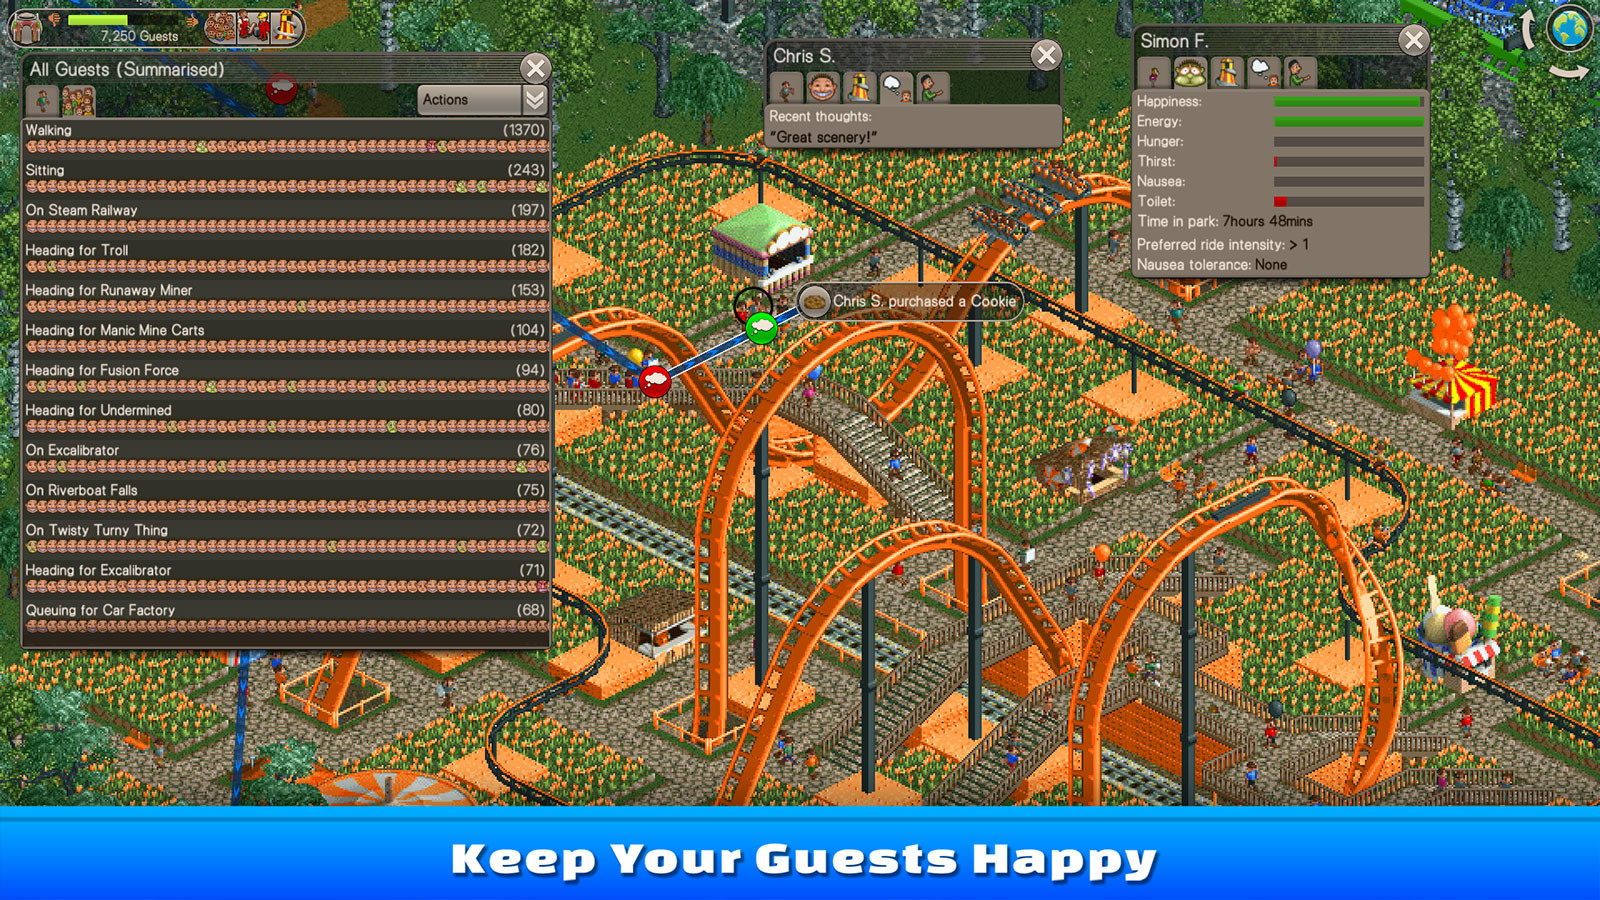 RollerCoaster Tycoon Classic [Steam CD Key] for PC and Mac - Buy now